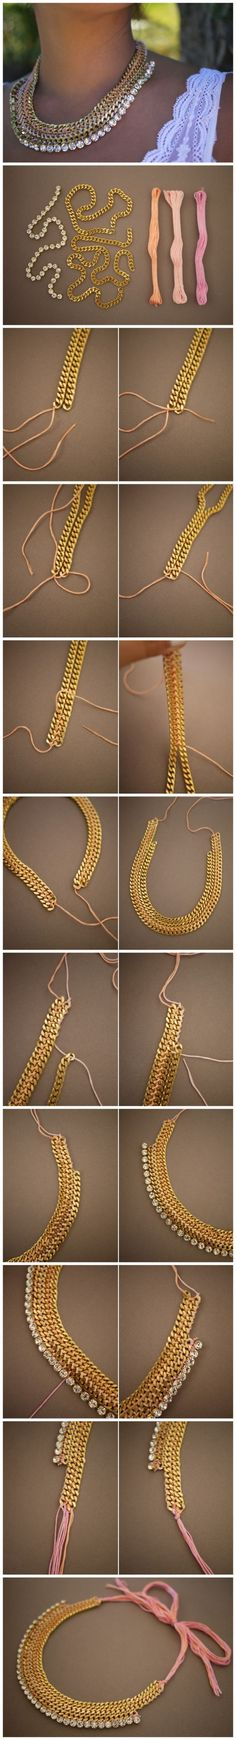 DIY necklace by anusha.annam.9